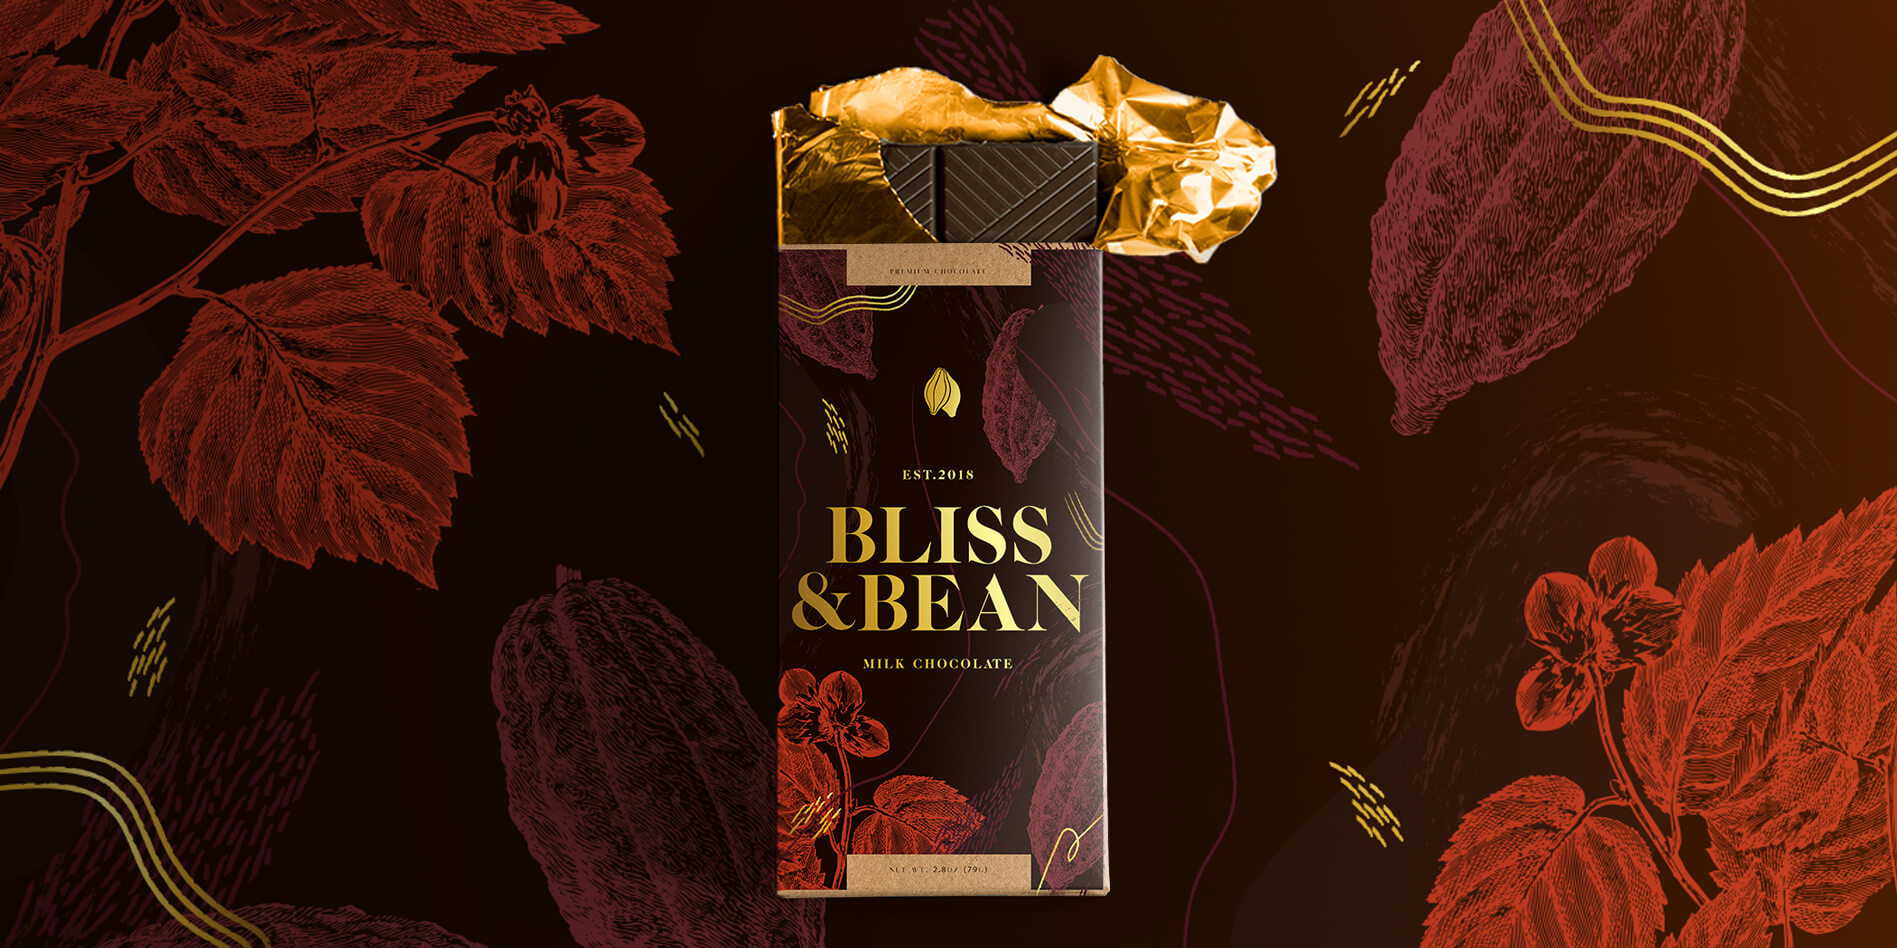 BLISS   BEAN PRODUCT DISPLAY - Bliss & Bean